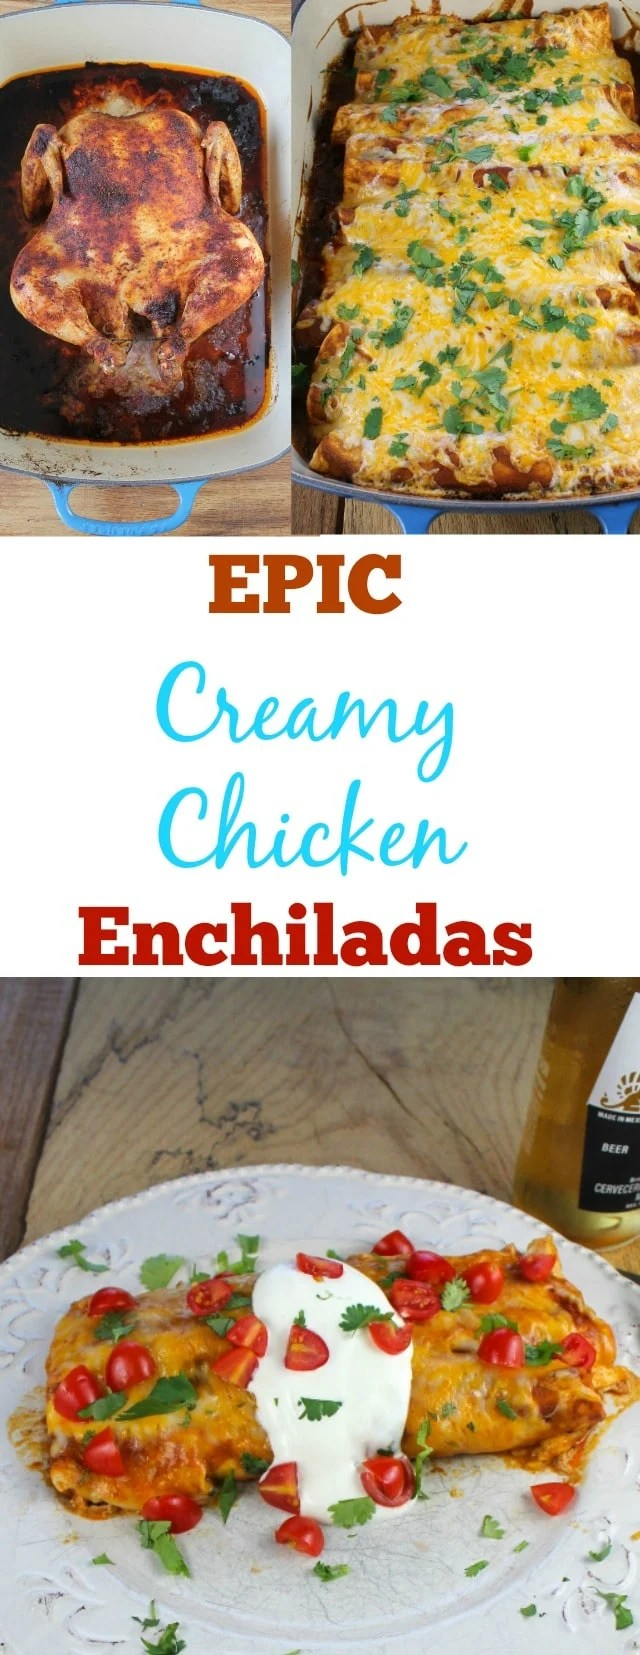 Epic Creamy Chicken Enchiladas Recipe found at Miss in the Kitchen